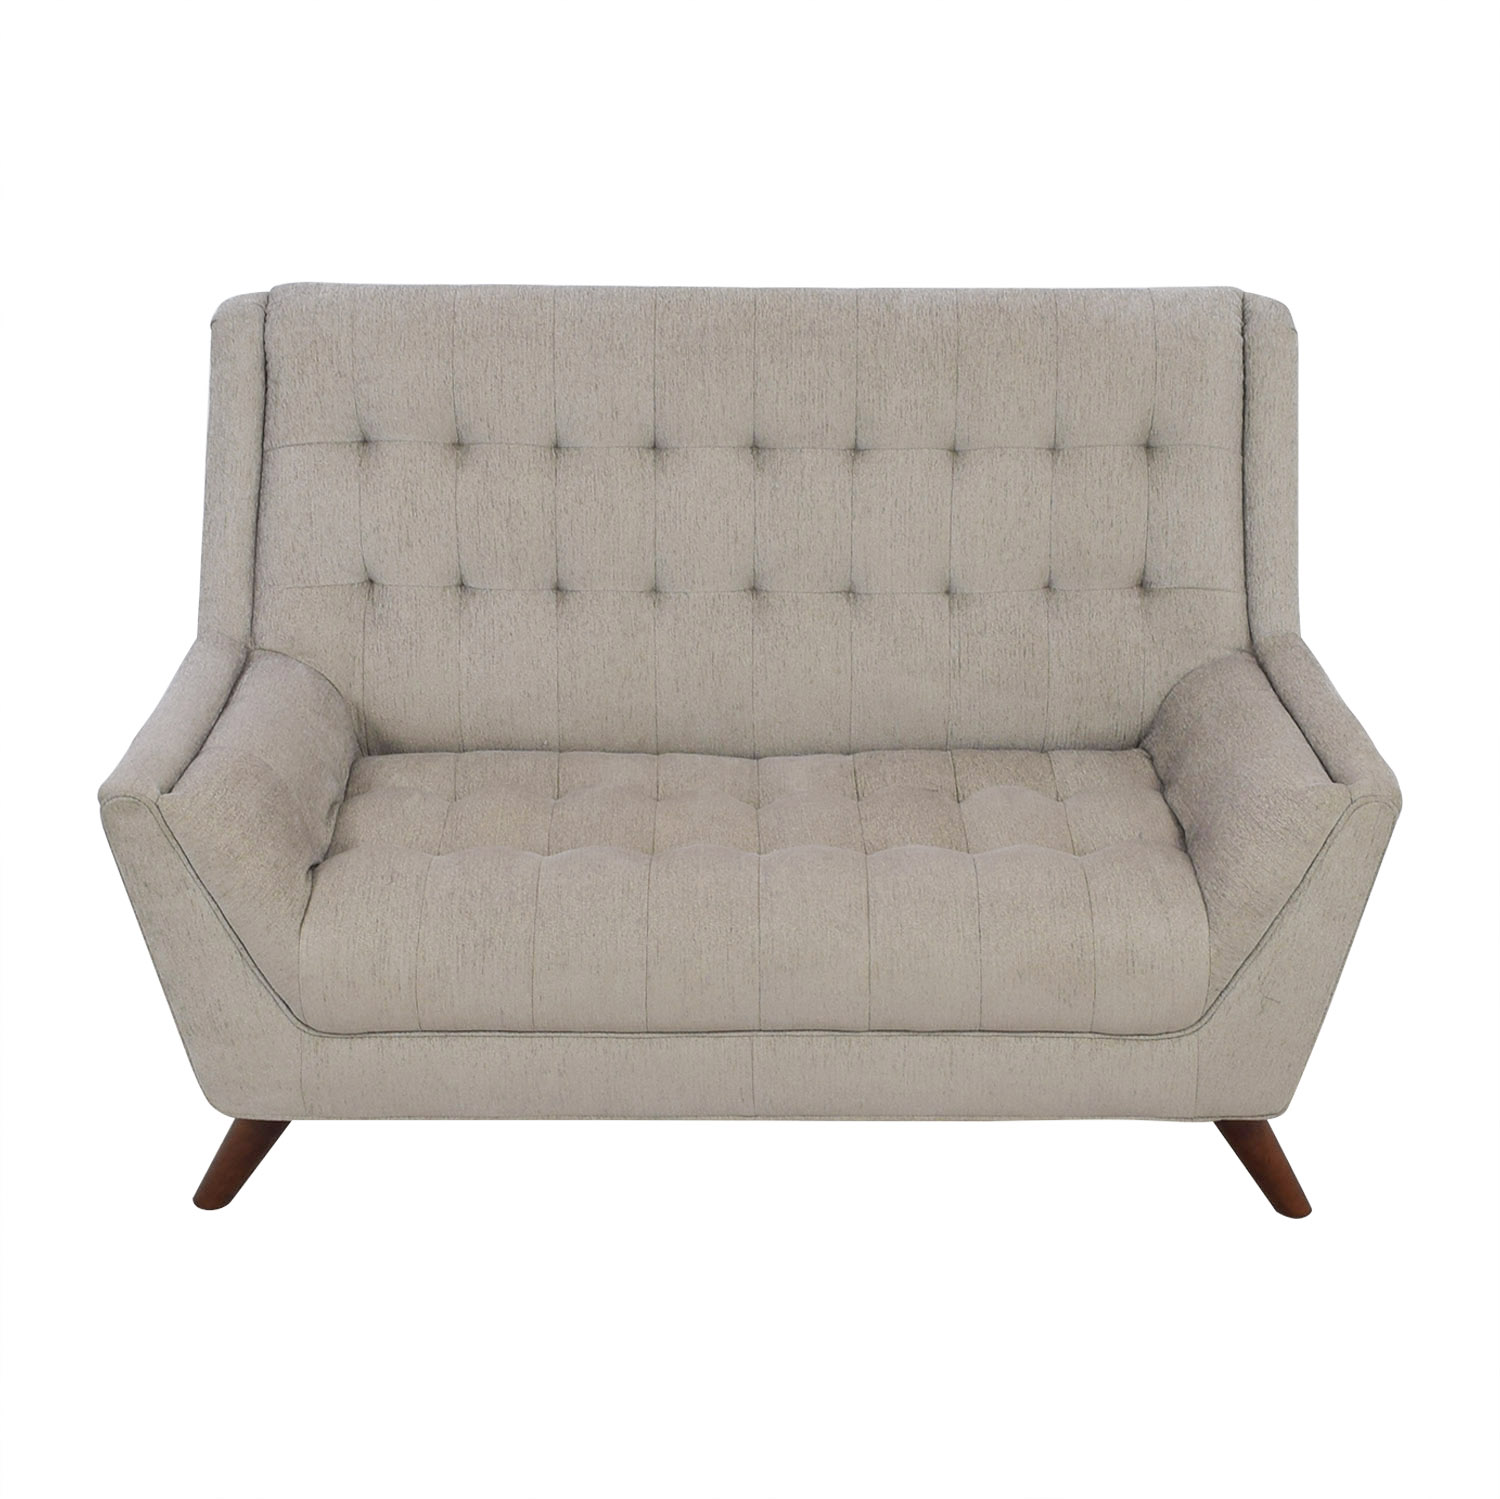 traditional full furniture wall luxury curved new loveseats loveseat navy as room sets and wonderful living for sofas lighting